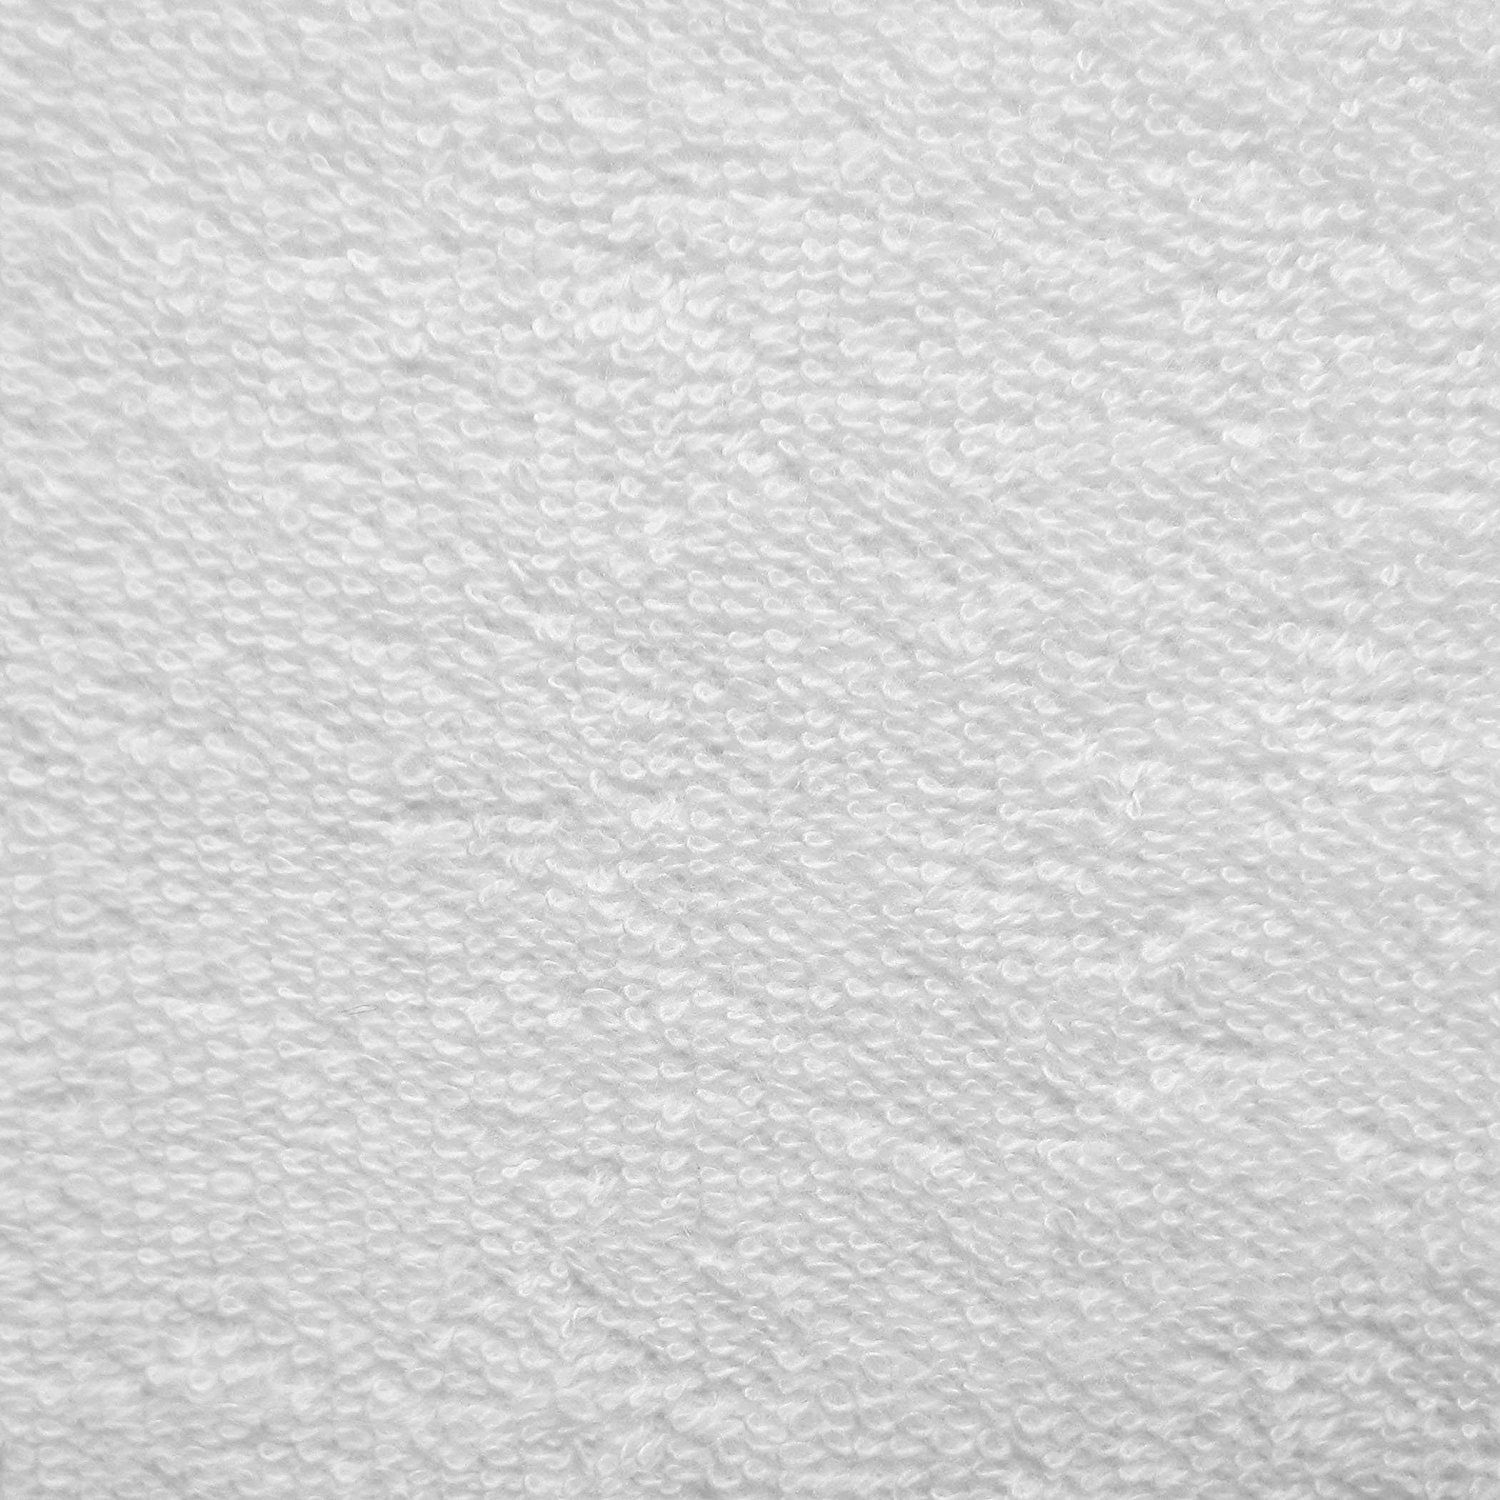 Levinsohn Terry Top Waterproof Pillow Protector Soft Cotton Blend Zip Closure 1 Pillow Cover White FRE-149-XX-WHIT-07 Standard